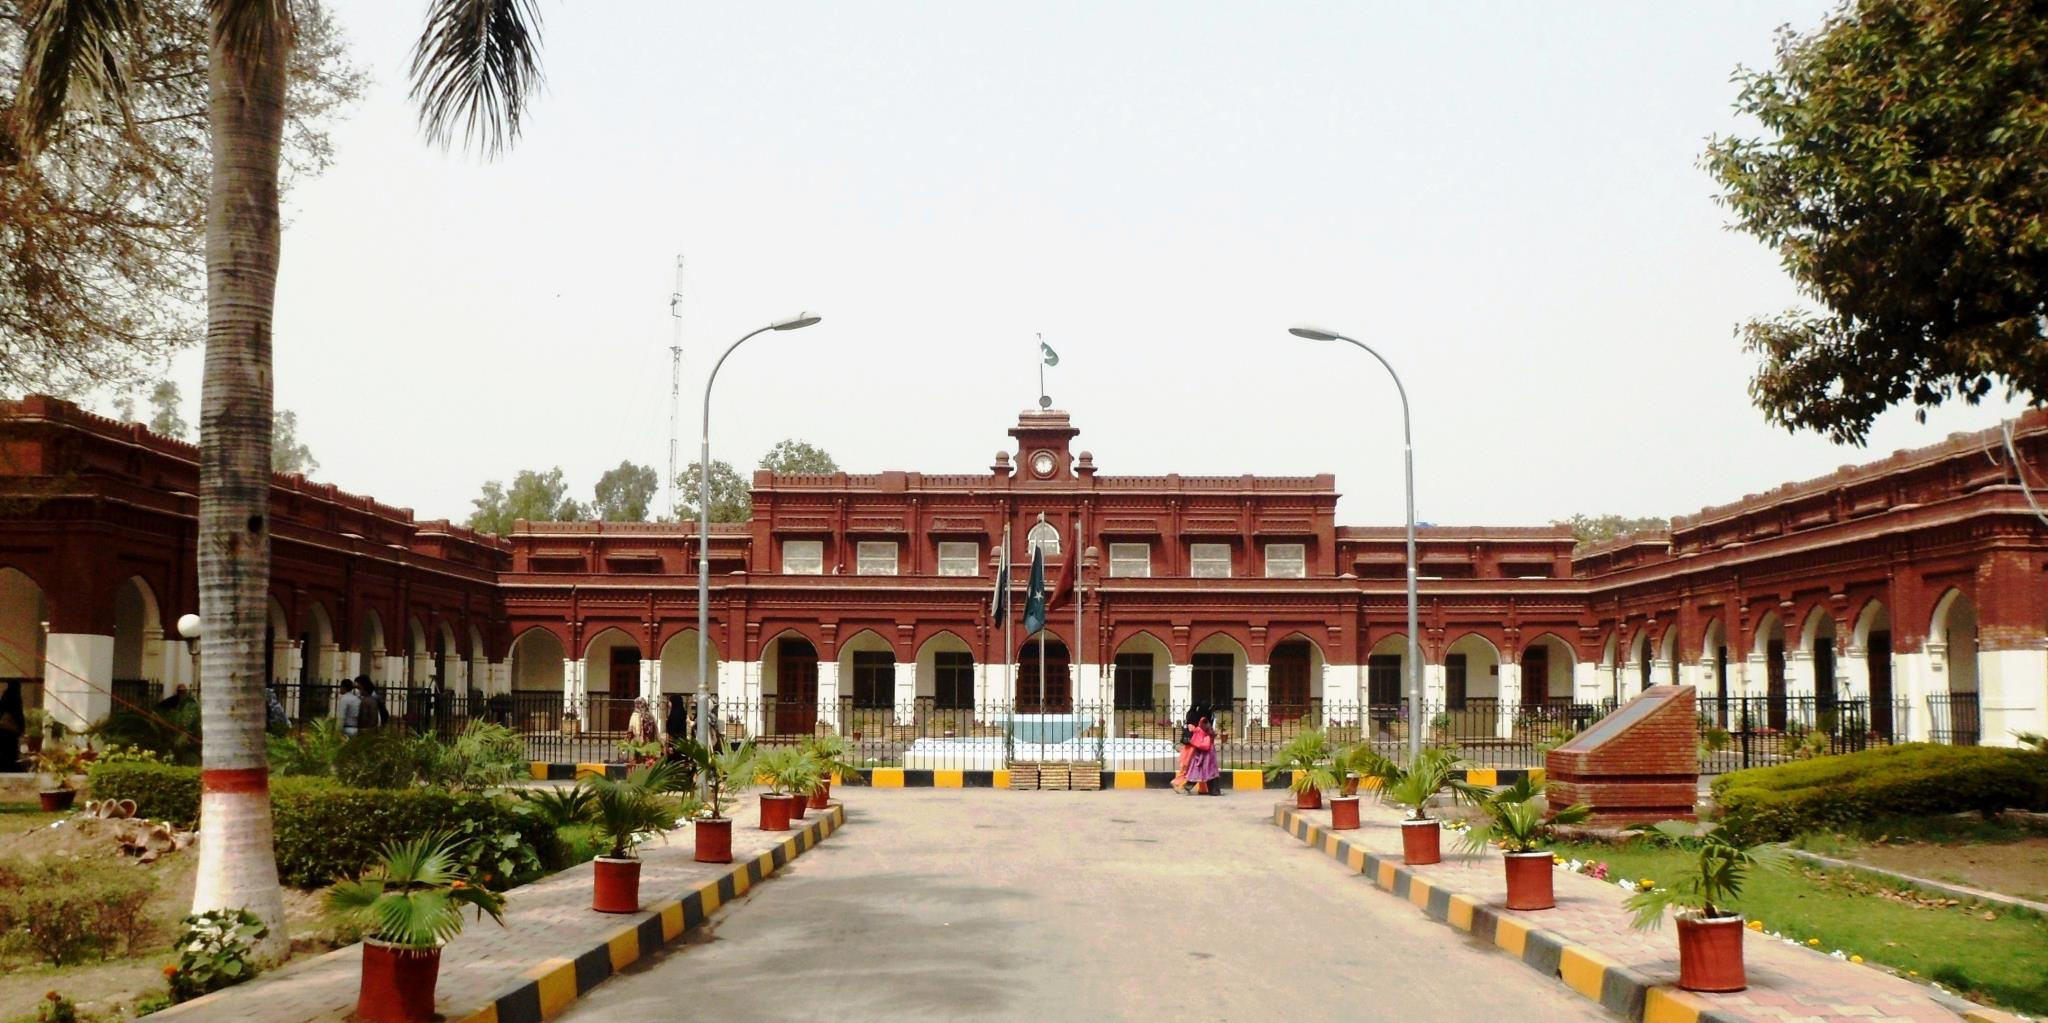 The Government College Faisalabad - Faisal Abad